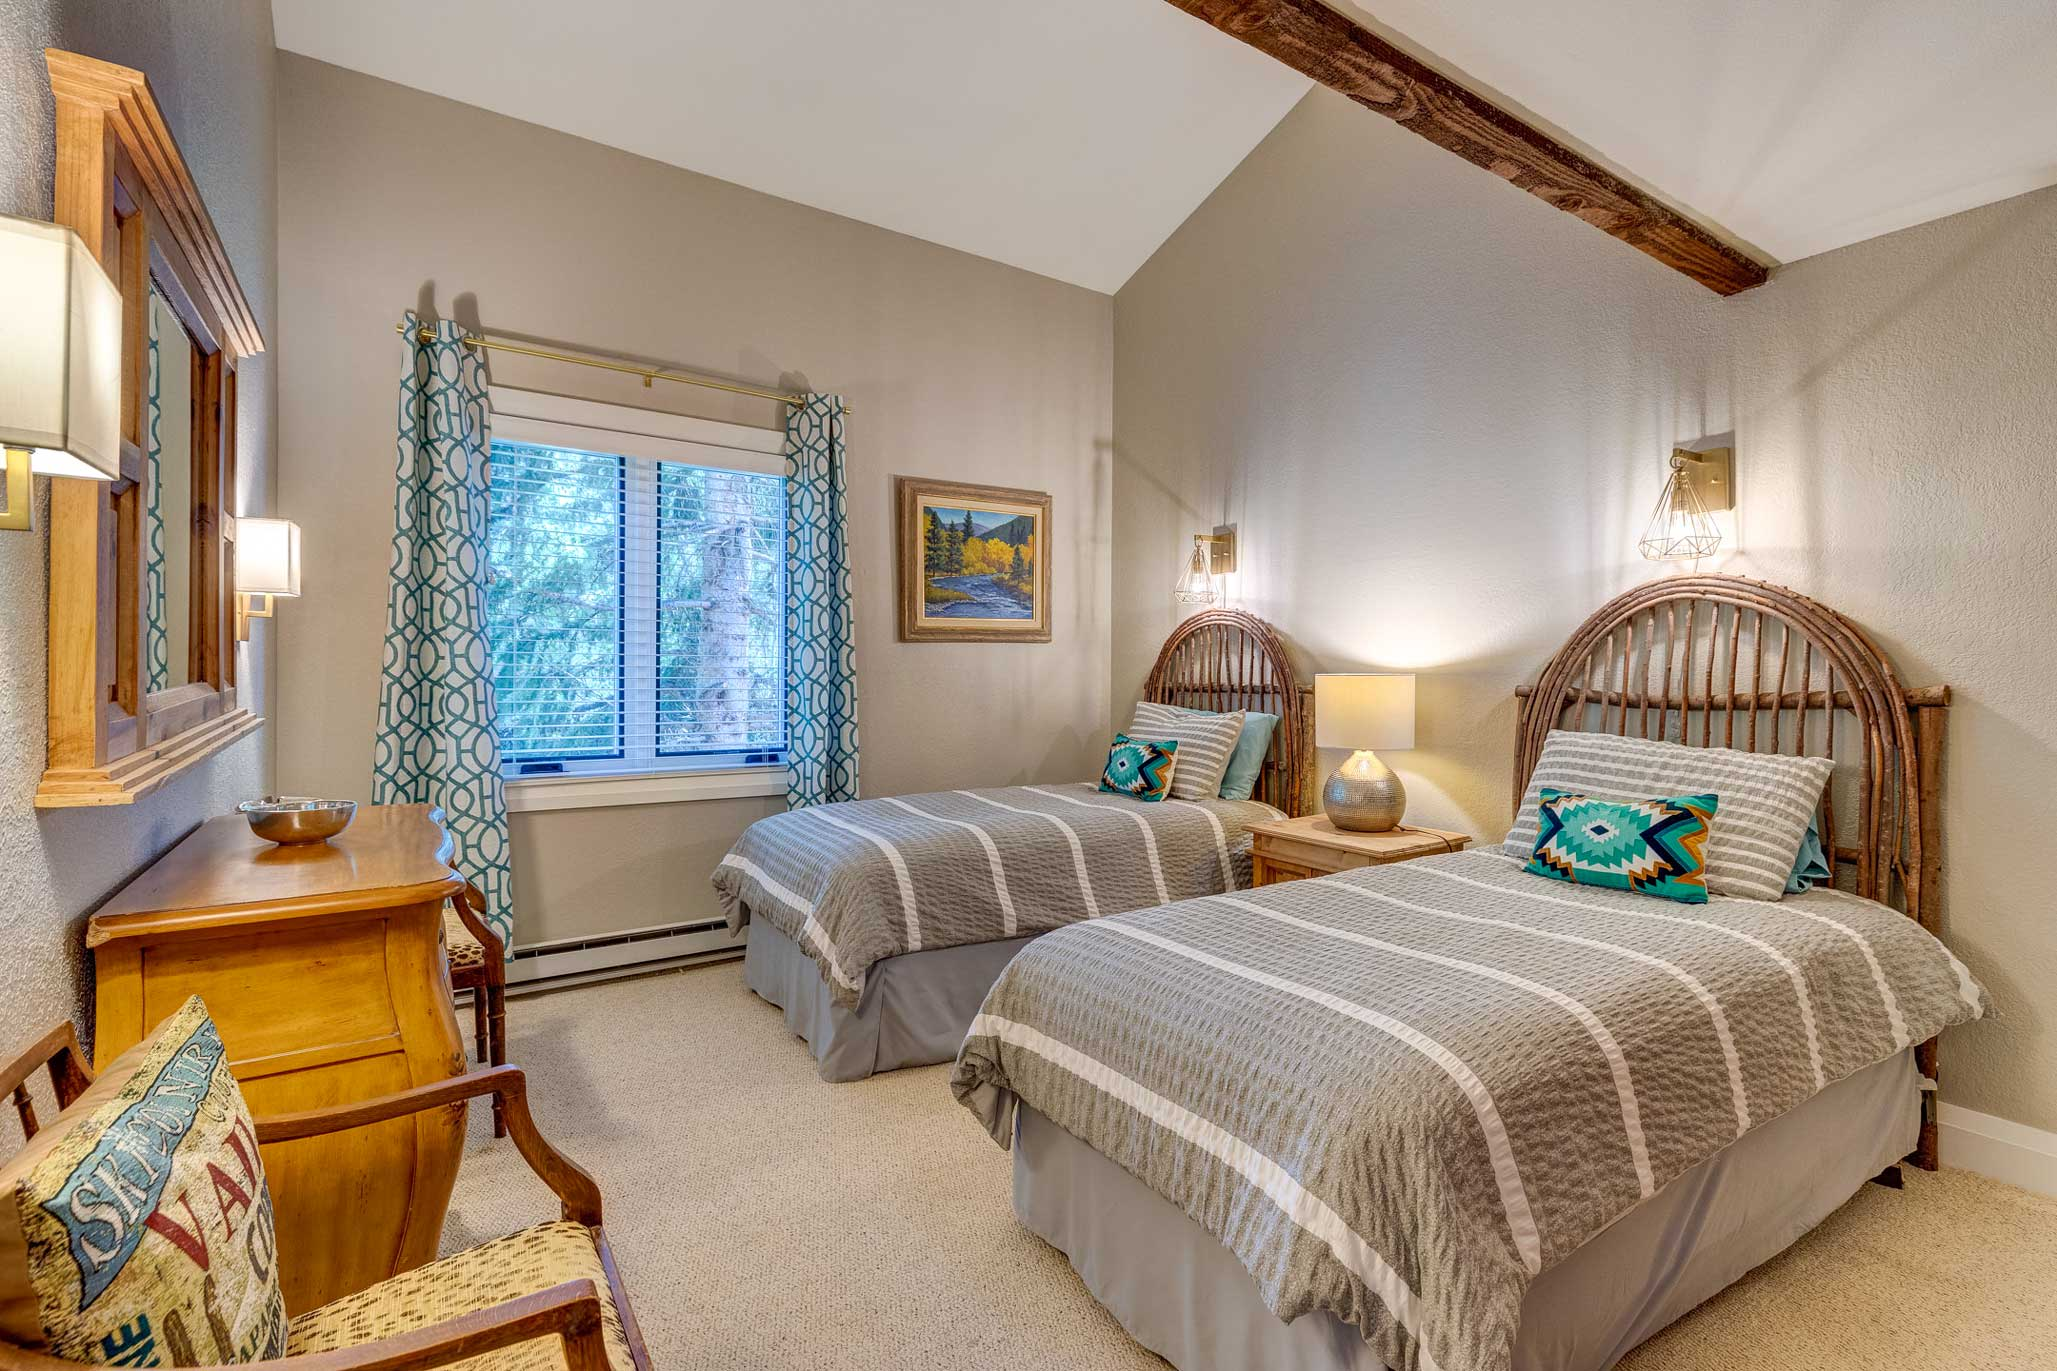 Two can share this bedroom with 2 twin-sized beds.